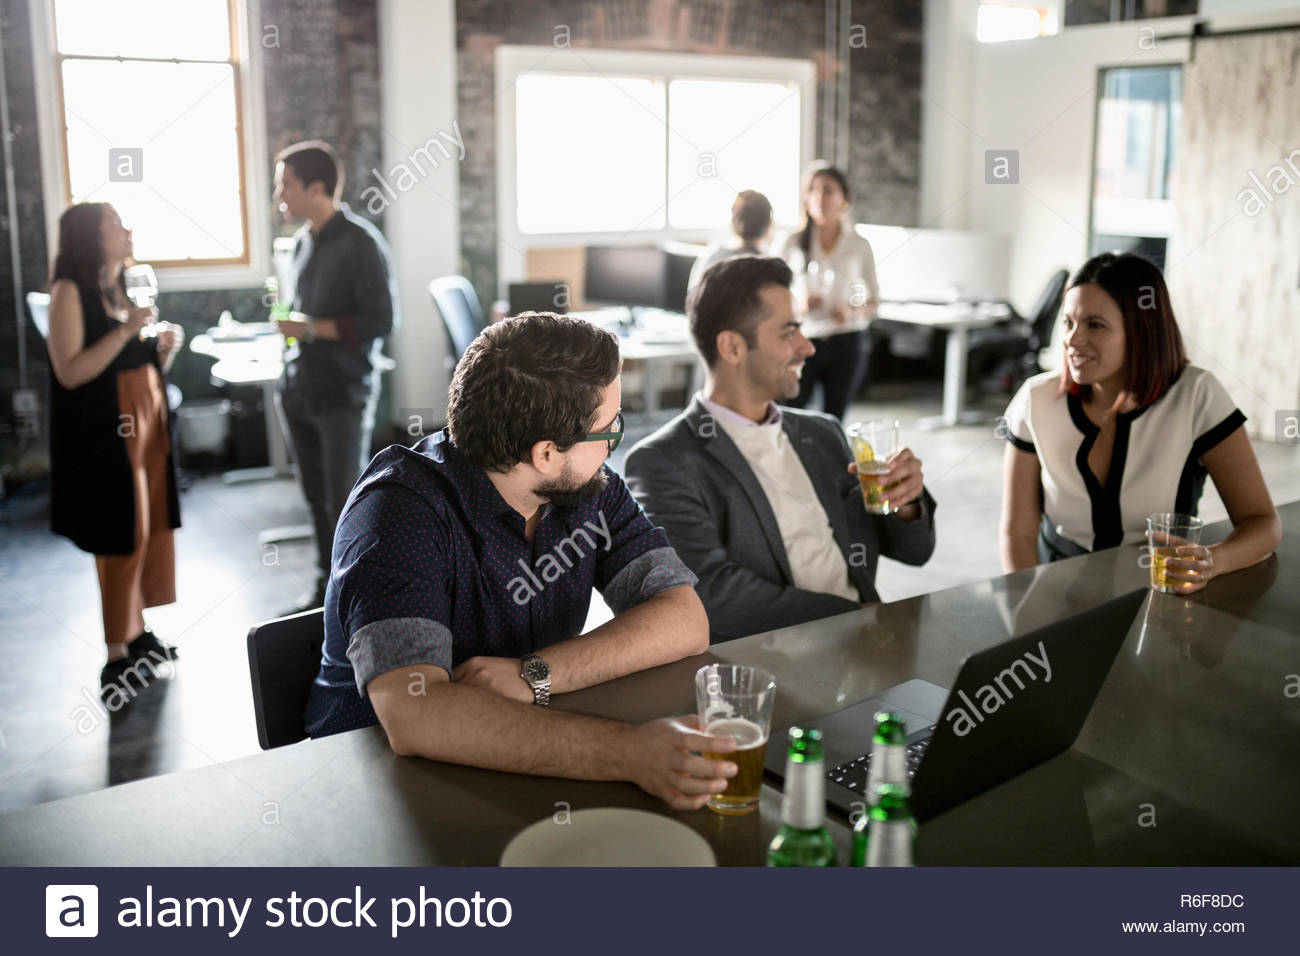 Creative business people drinking beer in loft office - Stock Image